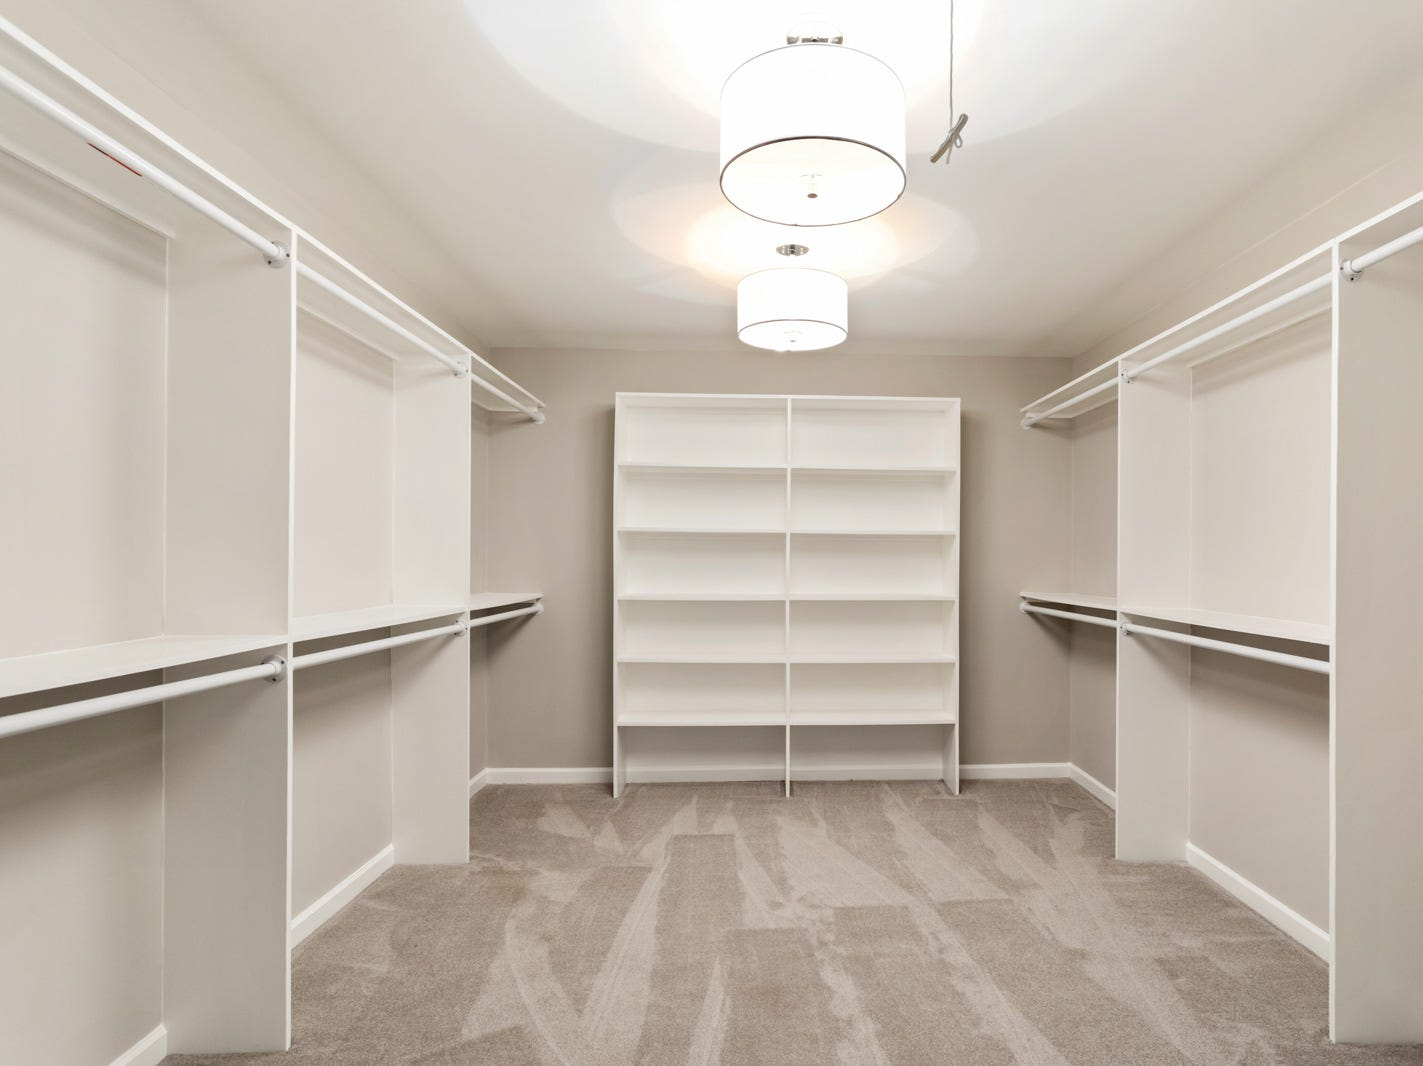 AFTER: The master bedroom redesign at 1104 Chelsea Court also offers a large walk-in closet.